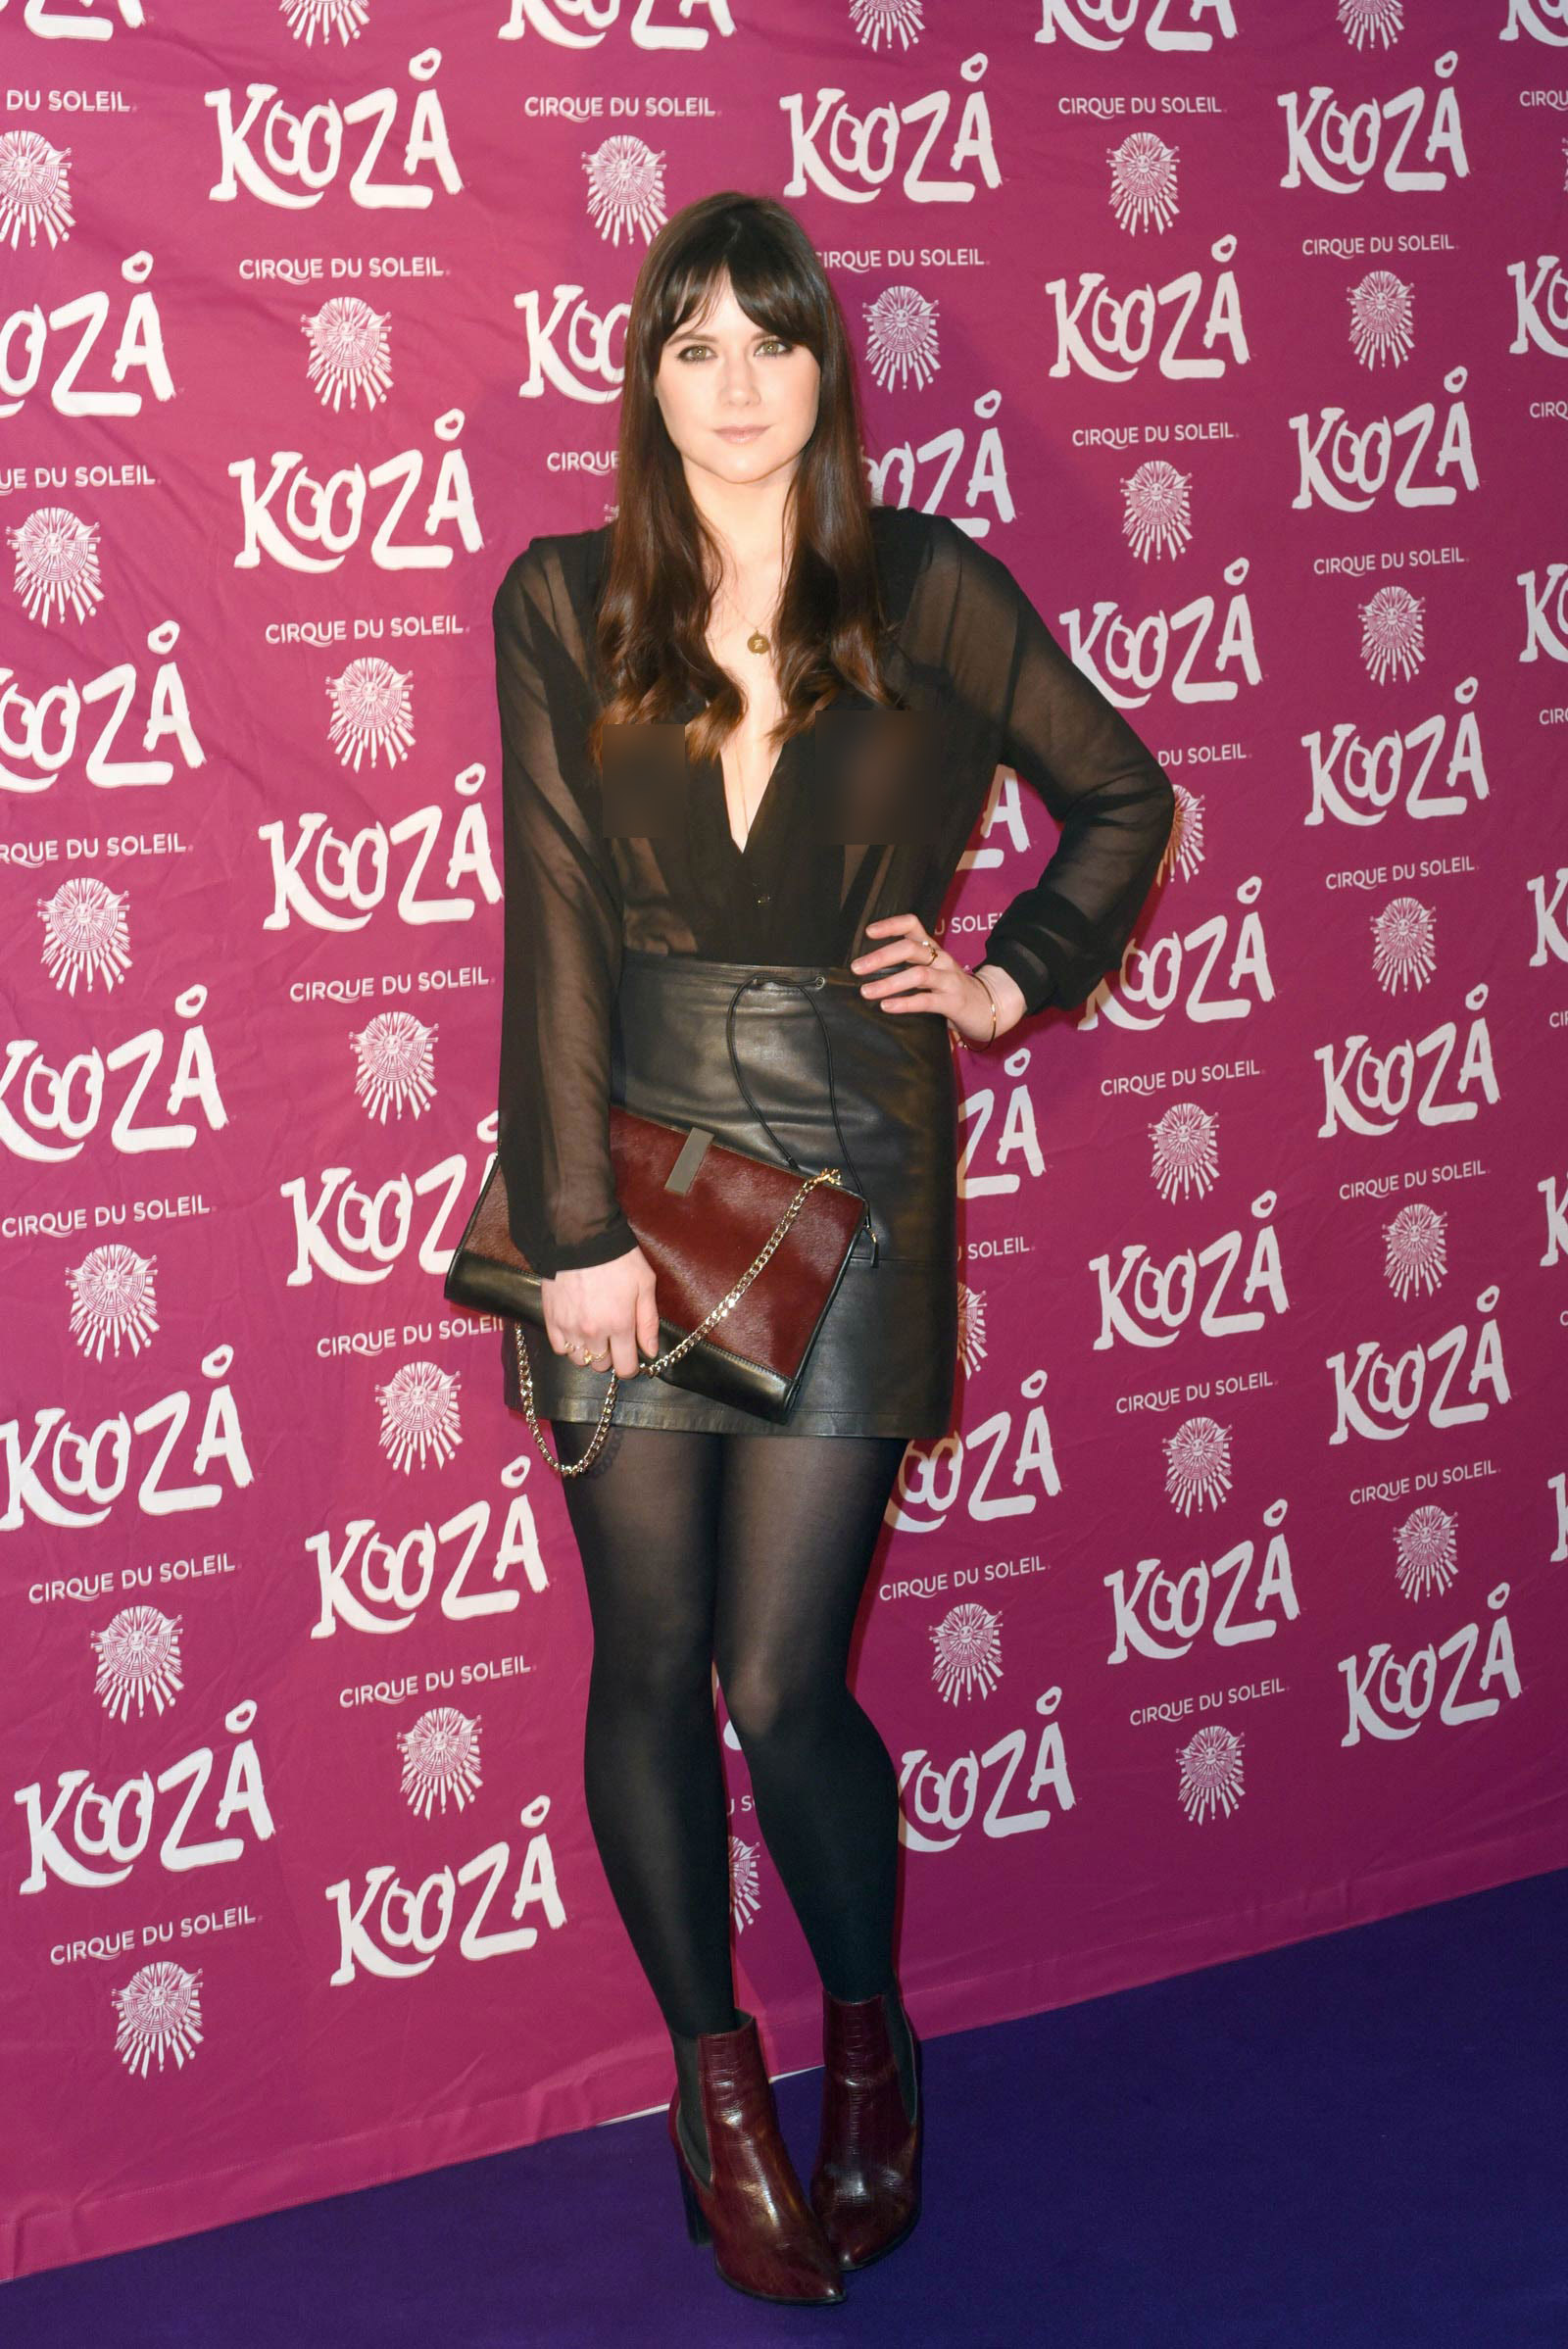 Lilah Parsons attends VIP performance of Kooza by Cirque Du Soleil